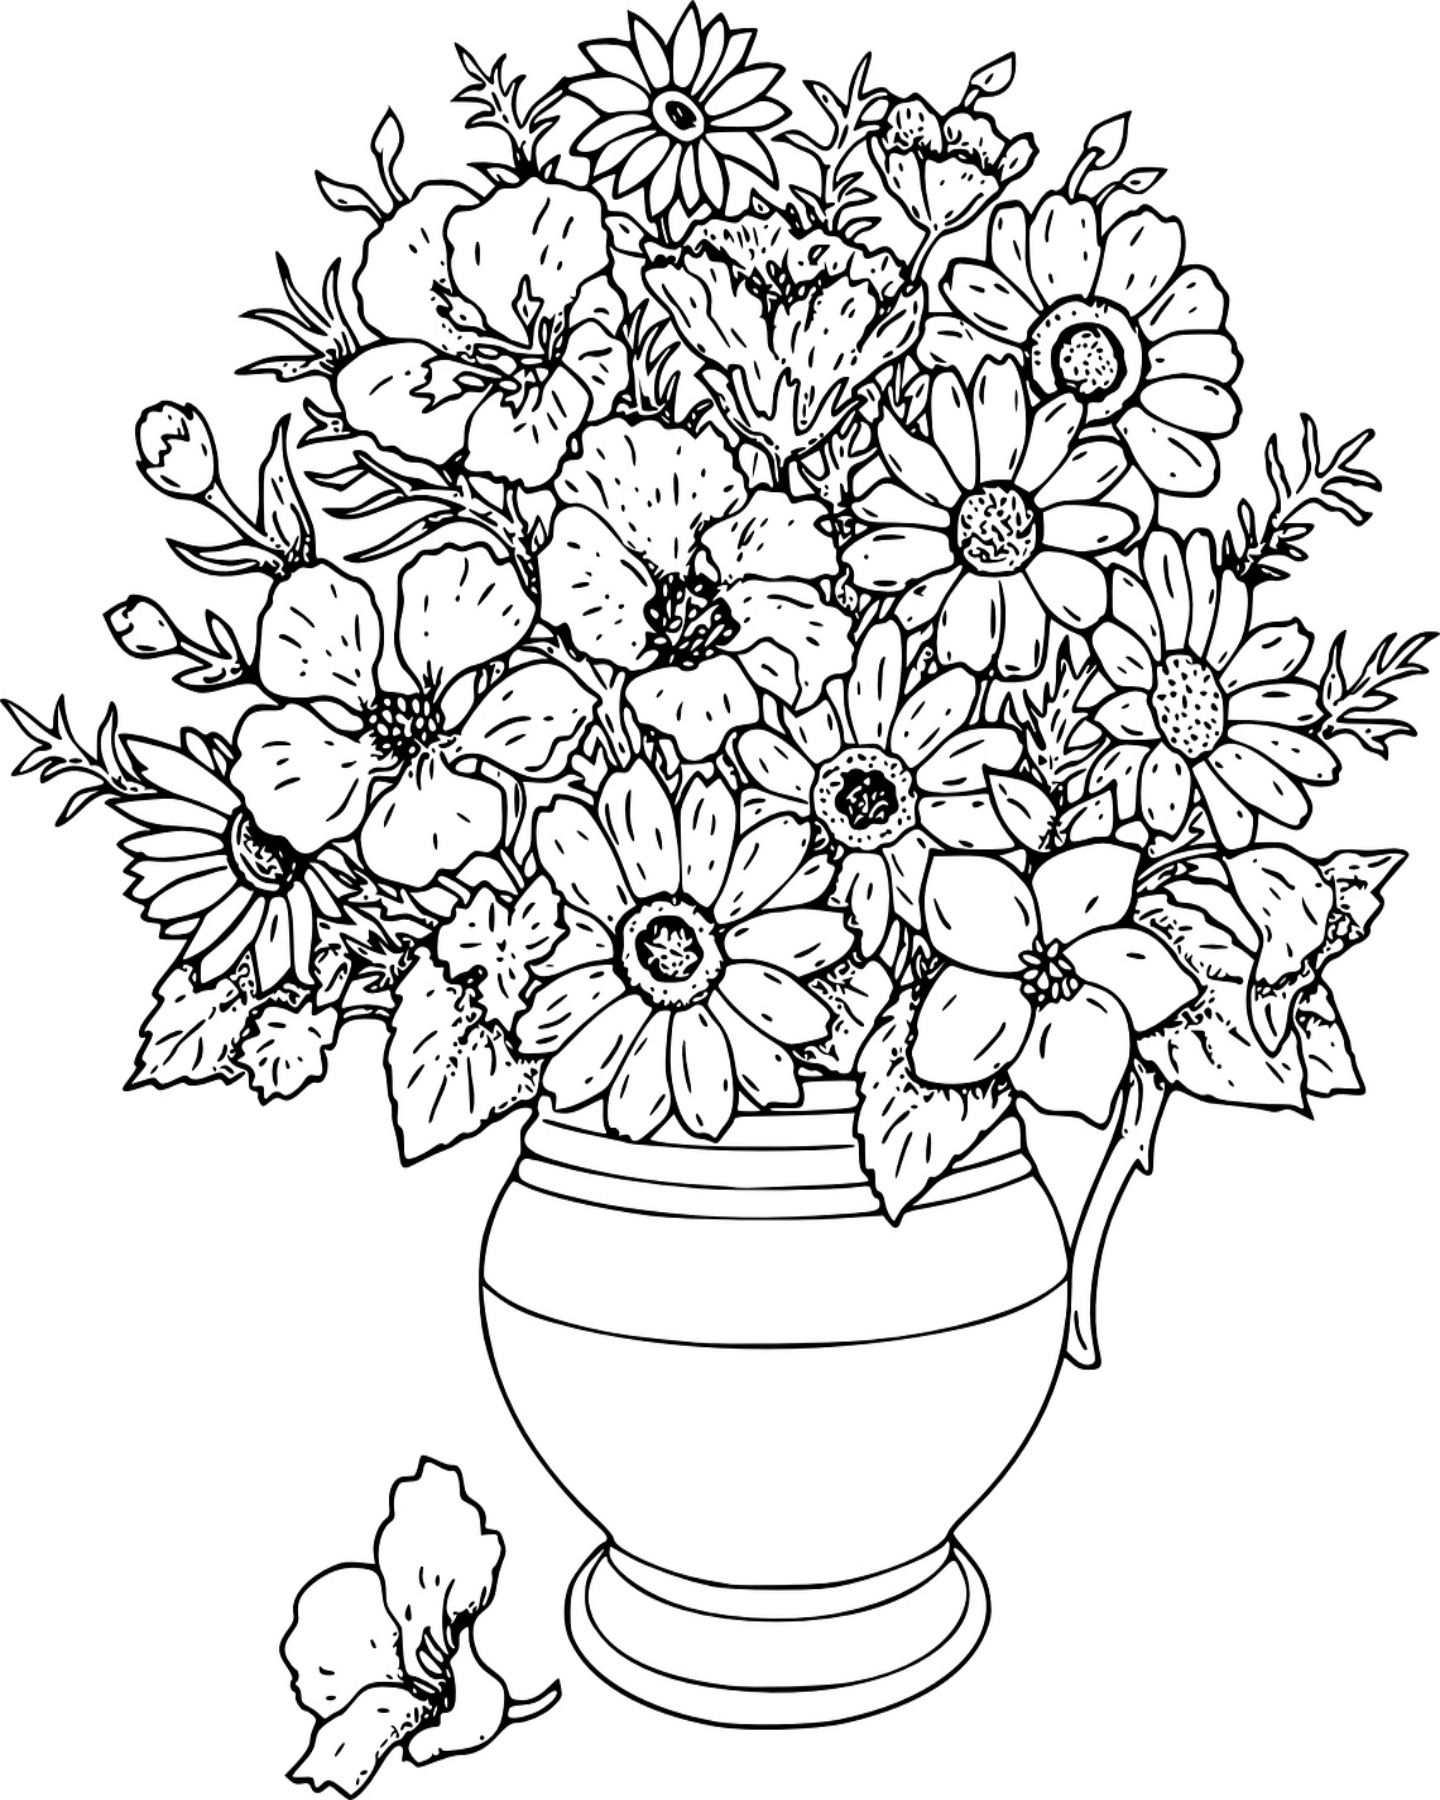 Coloring pages for adults tree - Find This Pin And More On Adult Coloring Pages